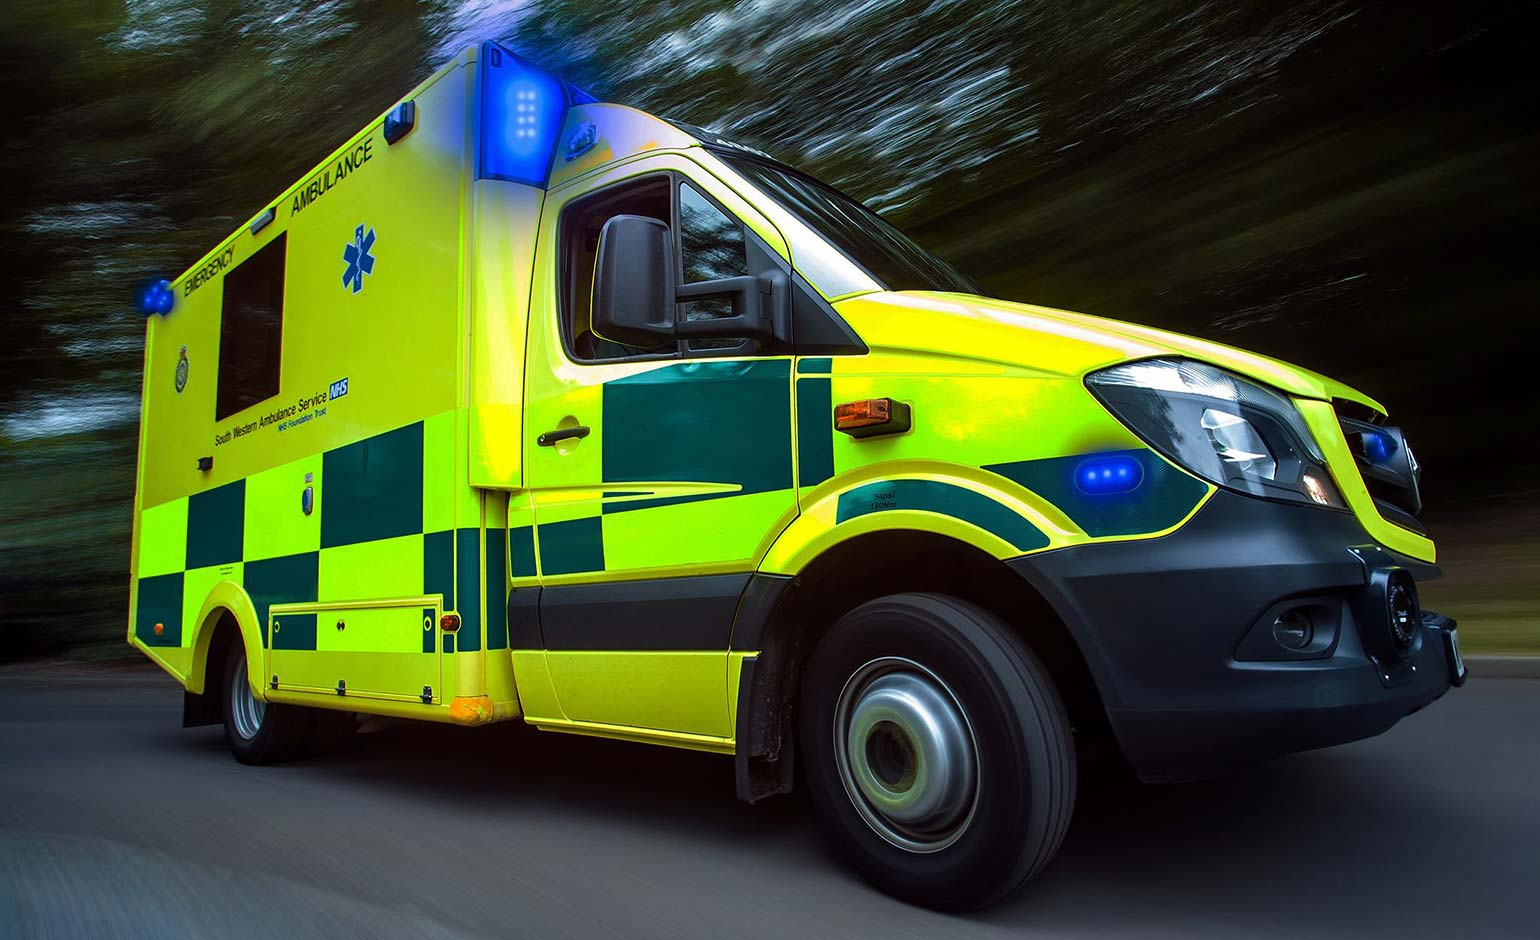 South Western Ambulance Service issues warning following hoax calls